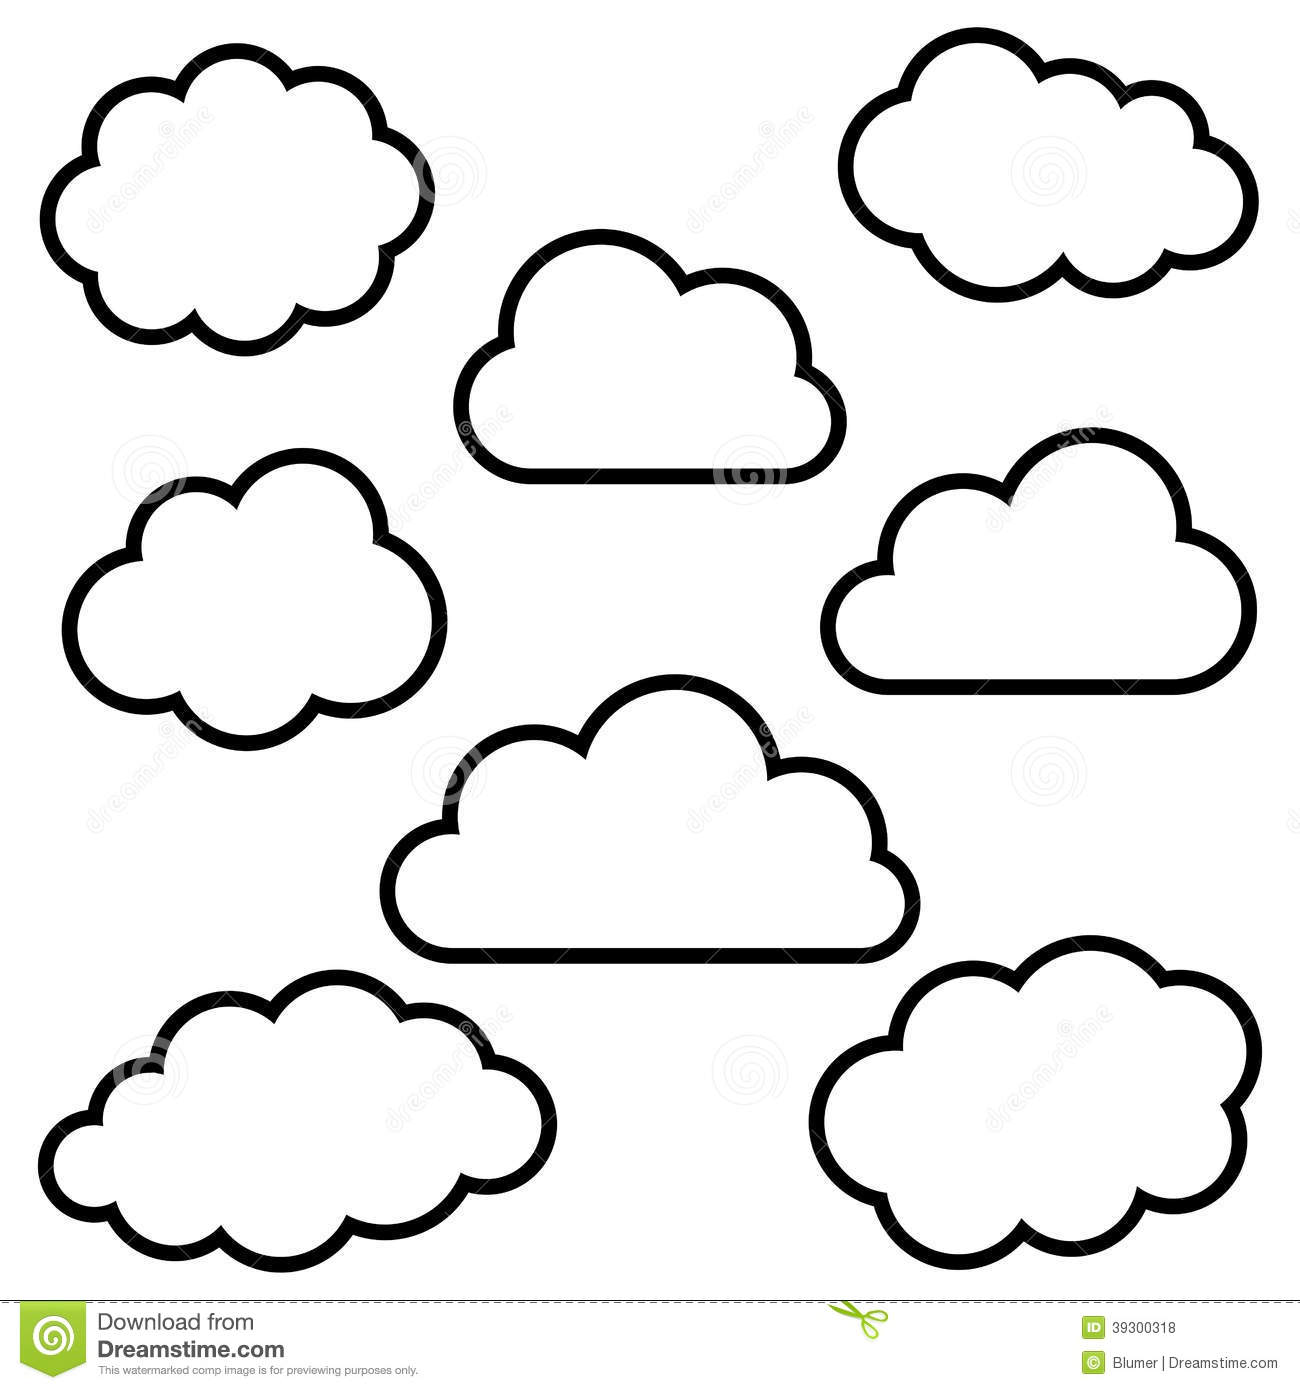 Sky black and white clipart 1 » Clipart Station.